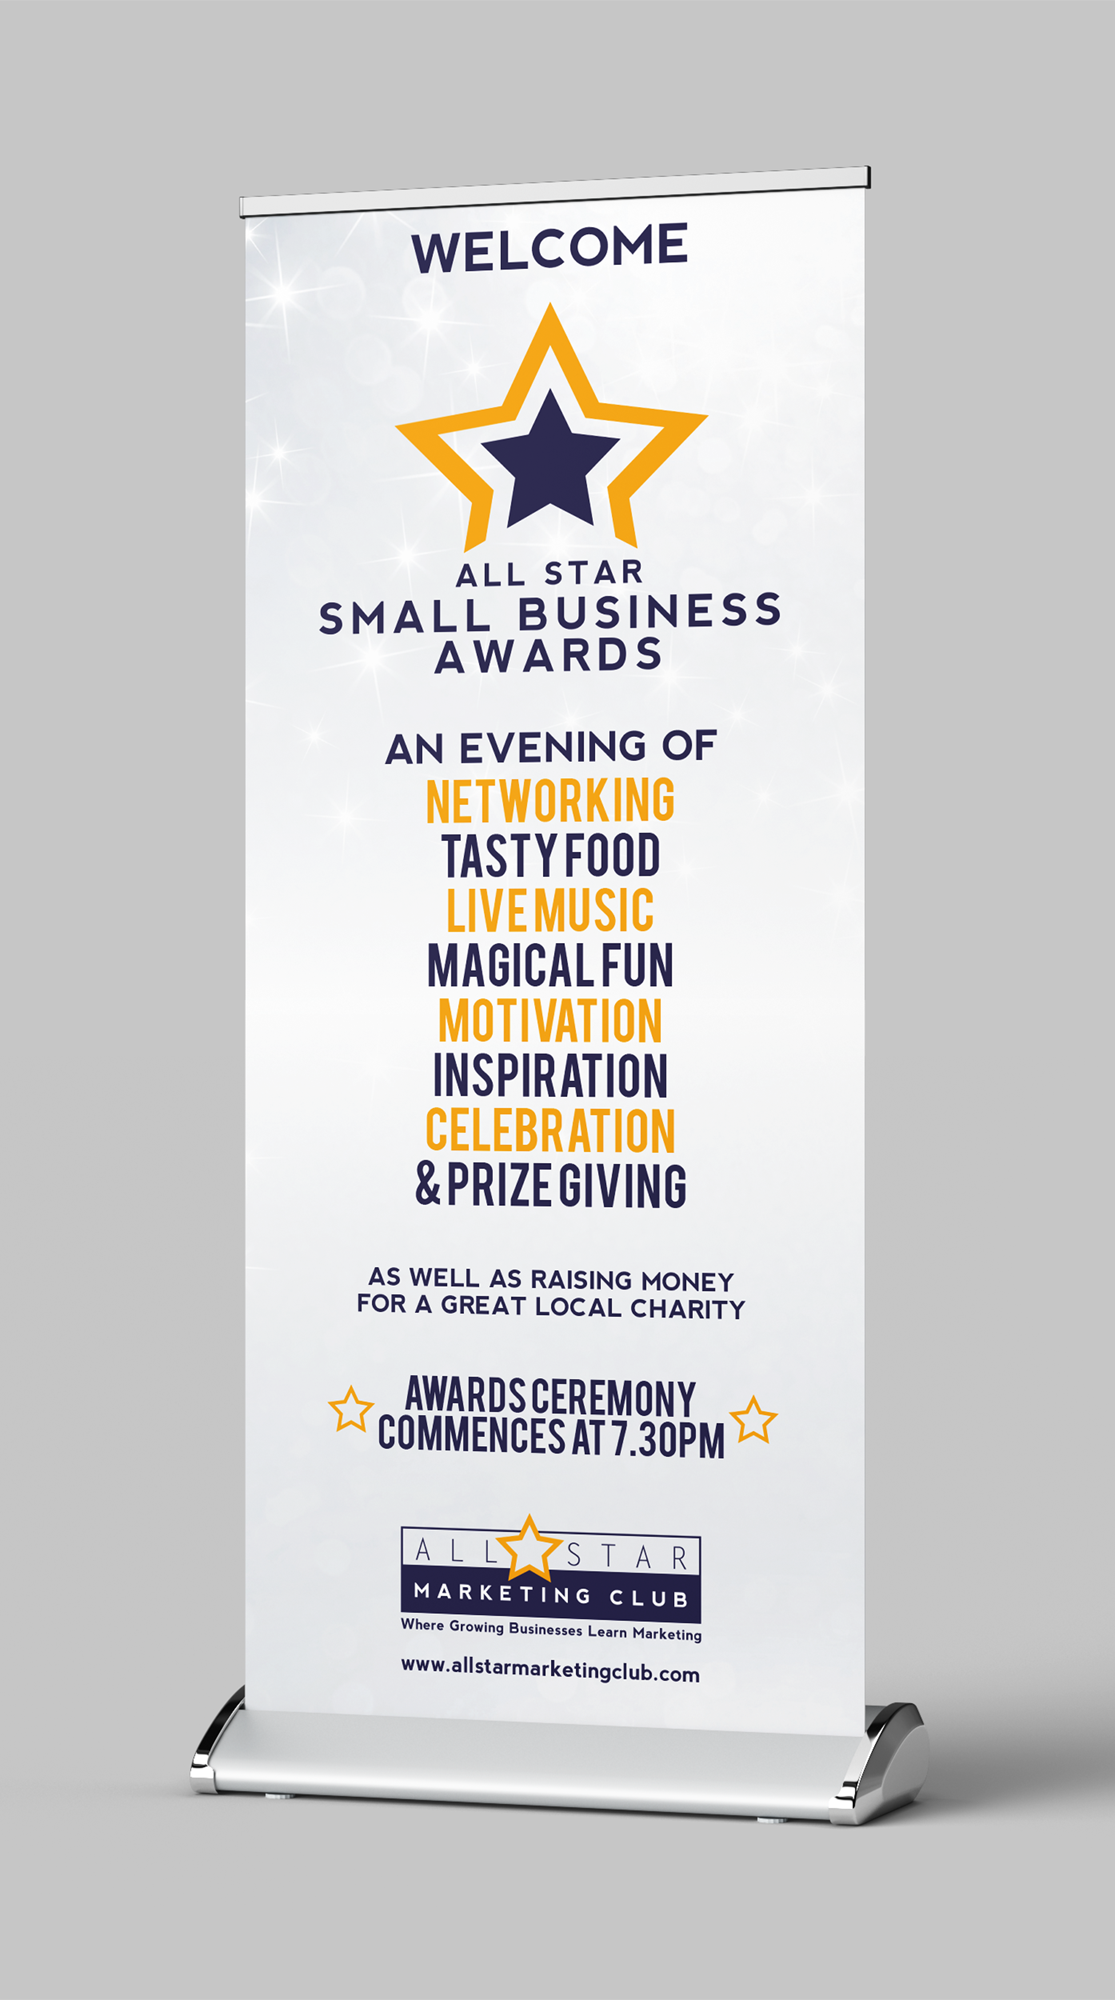 All Star Marketing Club Awards Banner Design